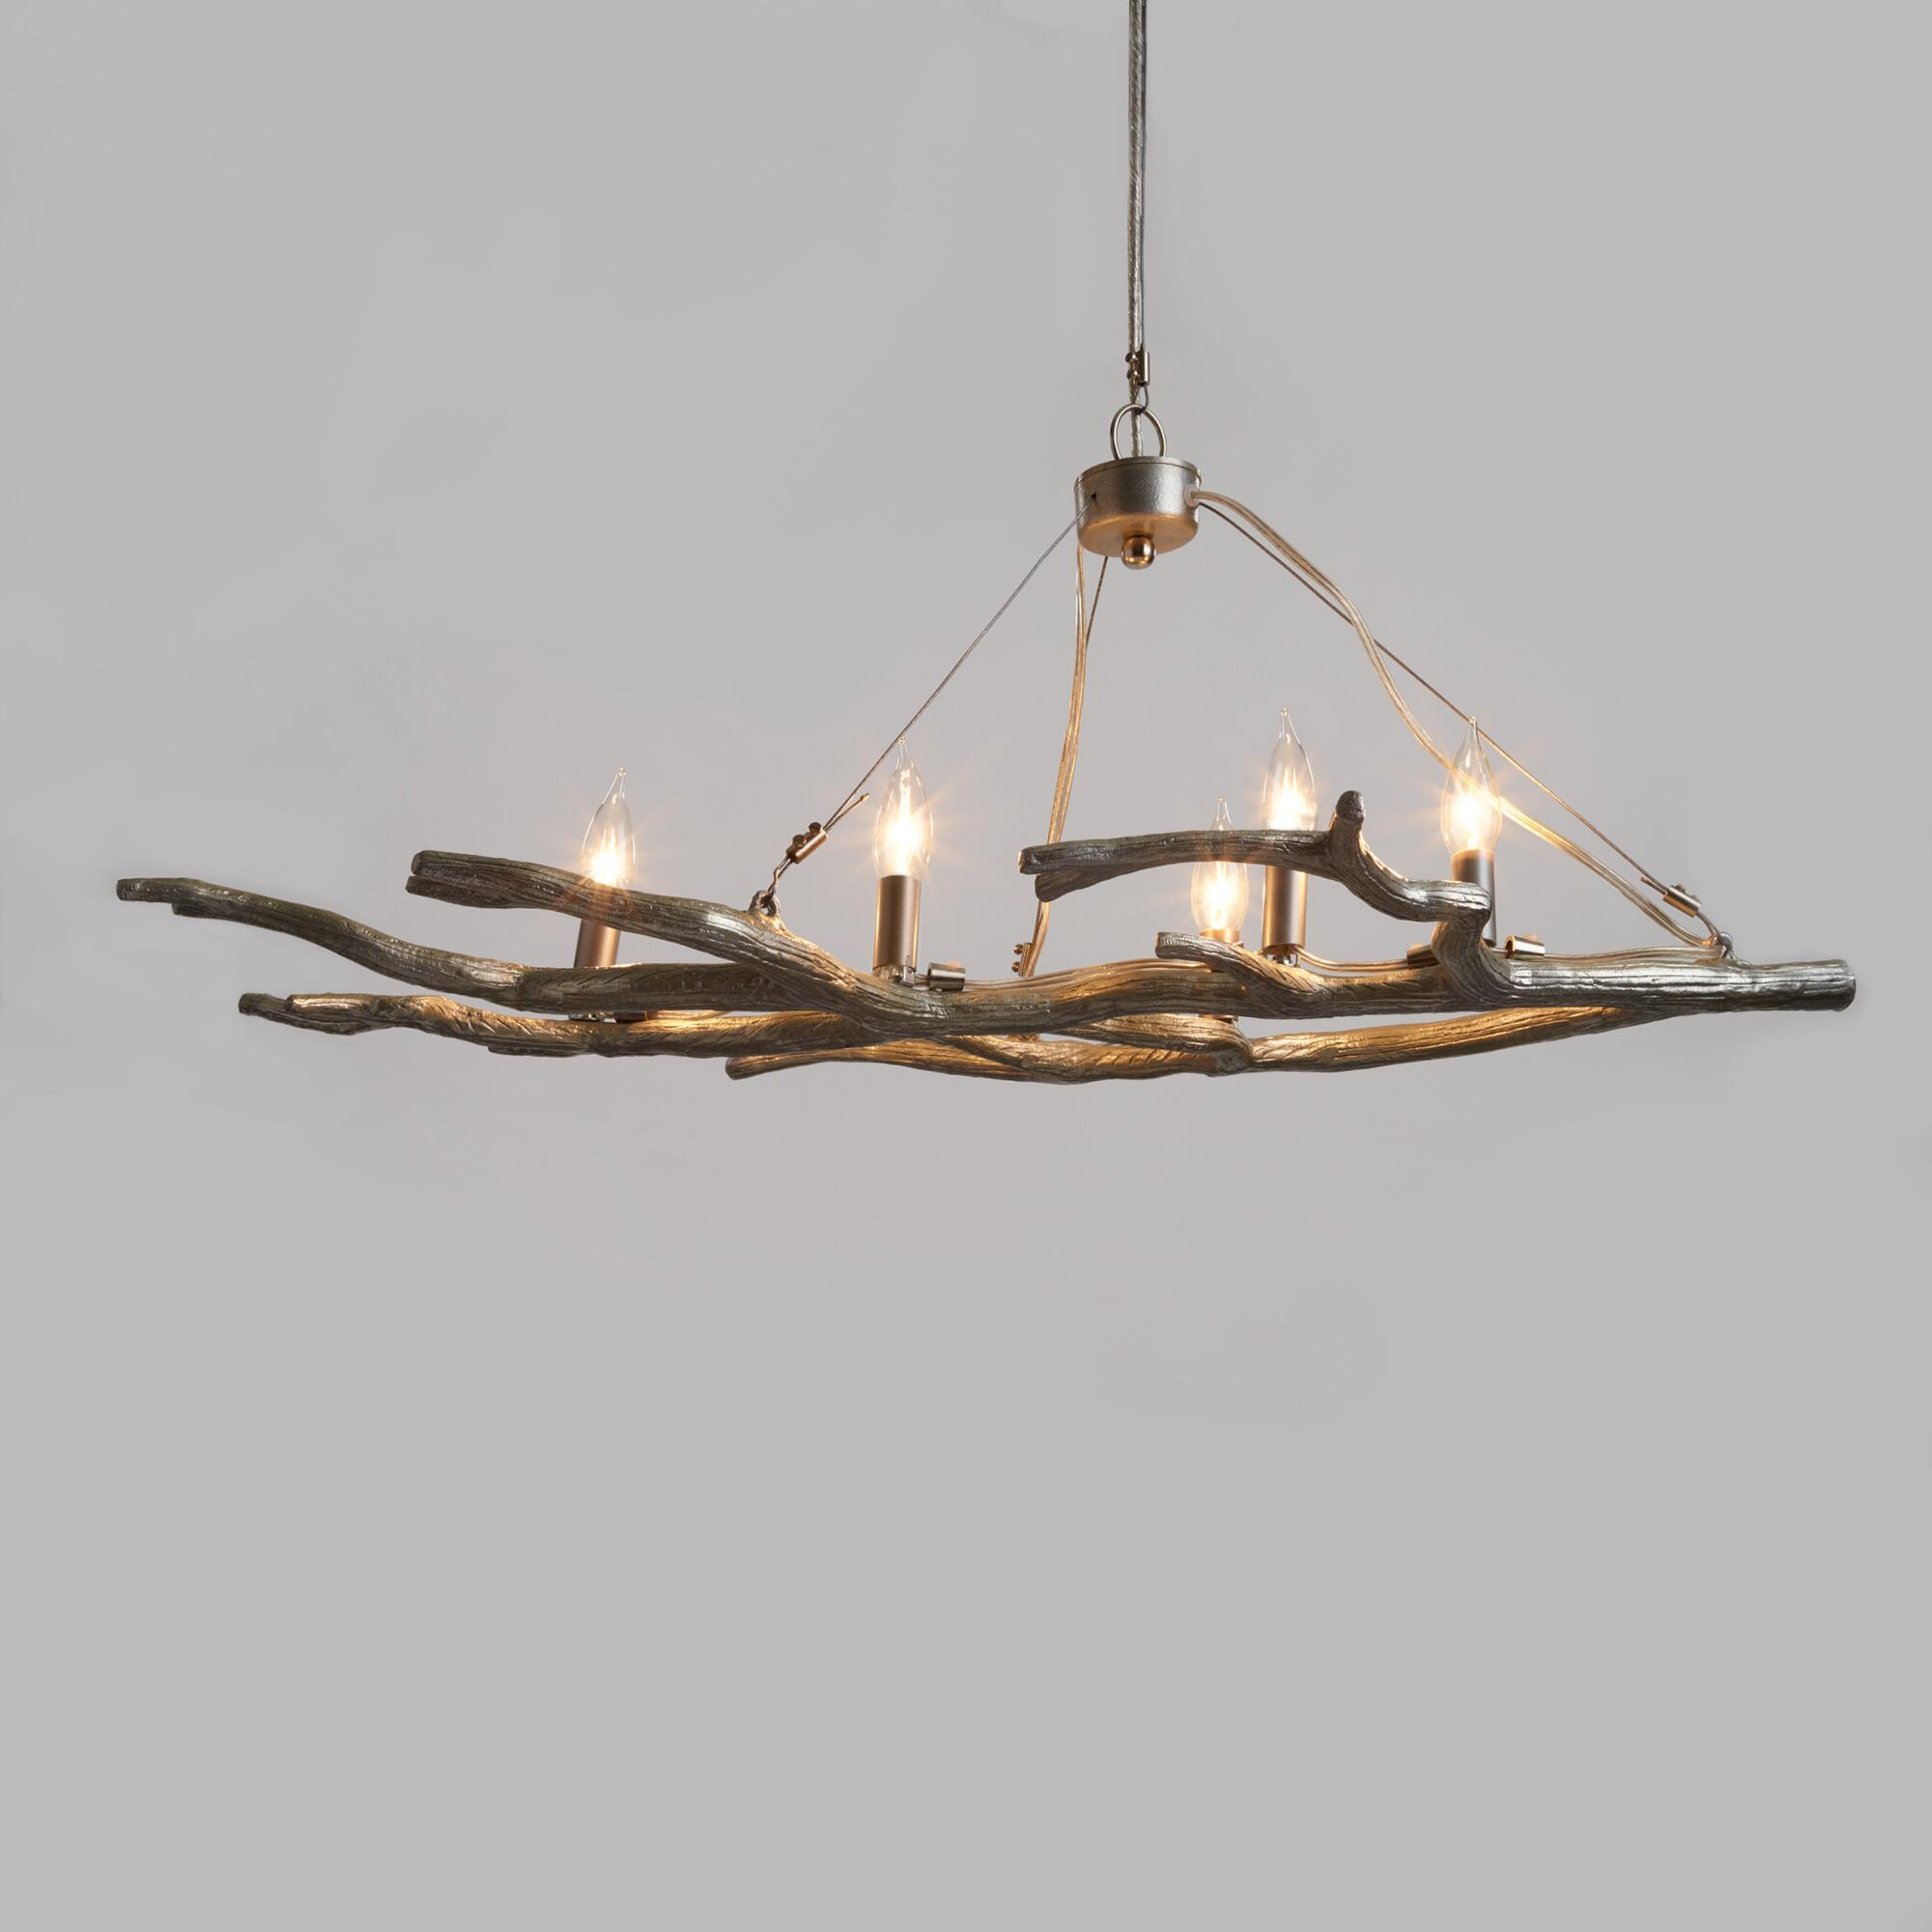 Tips to buy a proper desk lamps lighting and chandeliers - Silver Branch 5 Light Chandelier